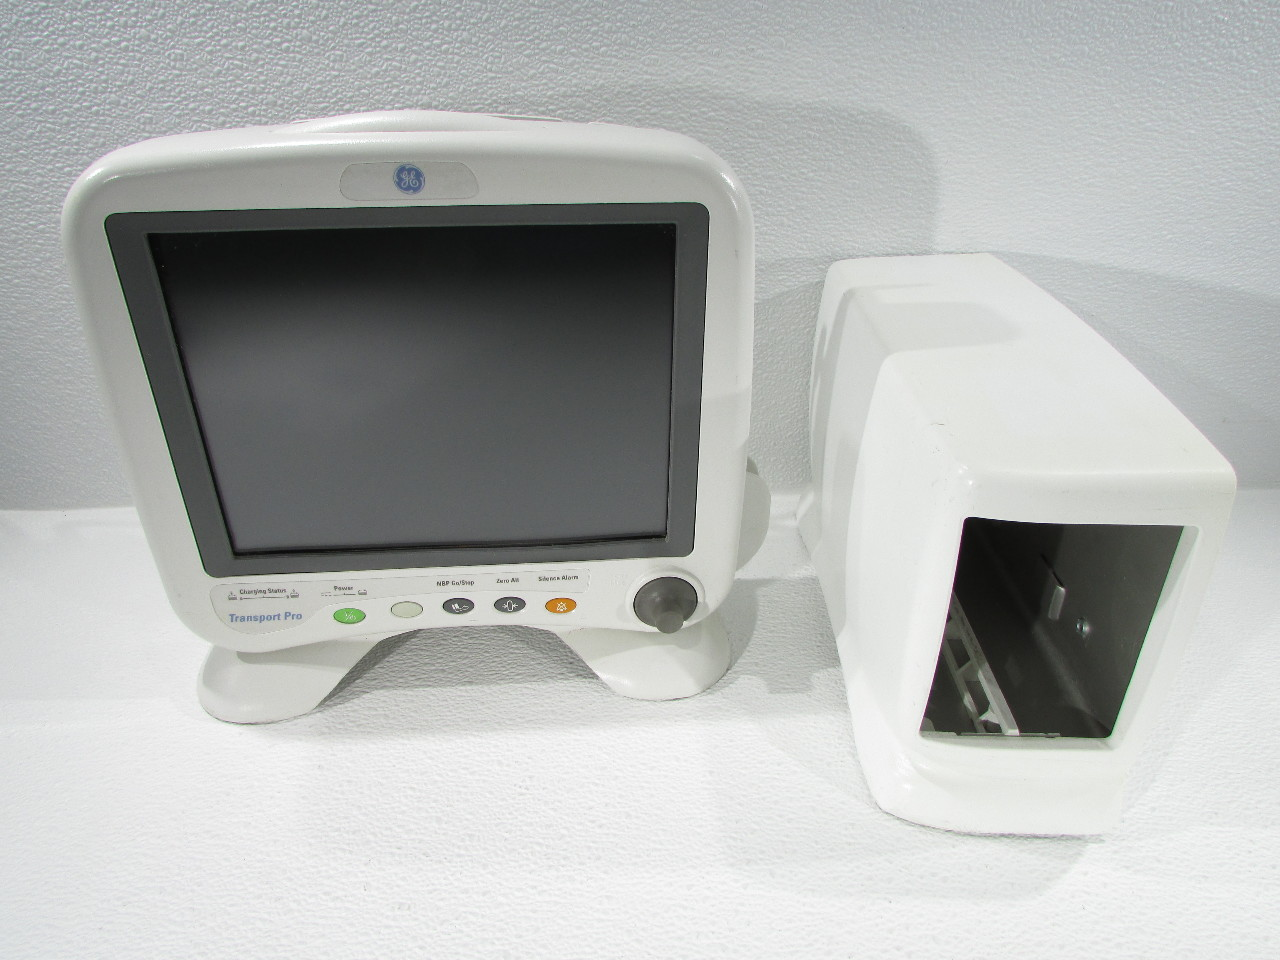 Transport Monitoring System : Ge medical systems transport pro patient monitor